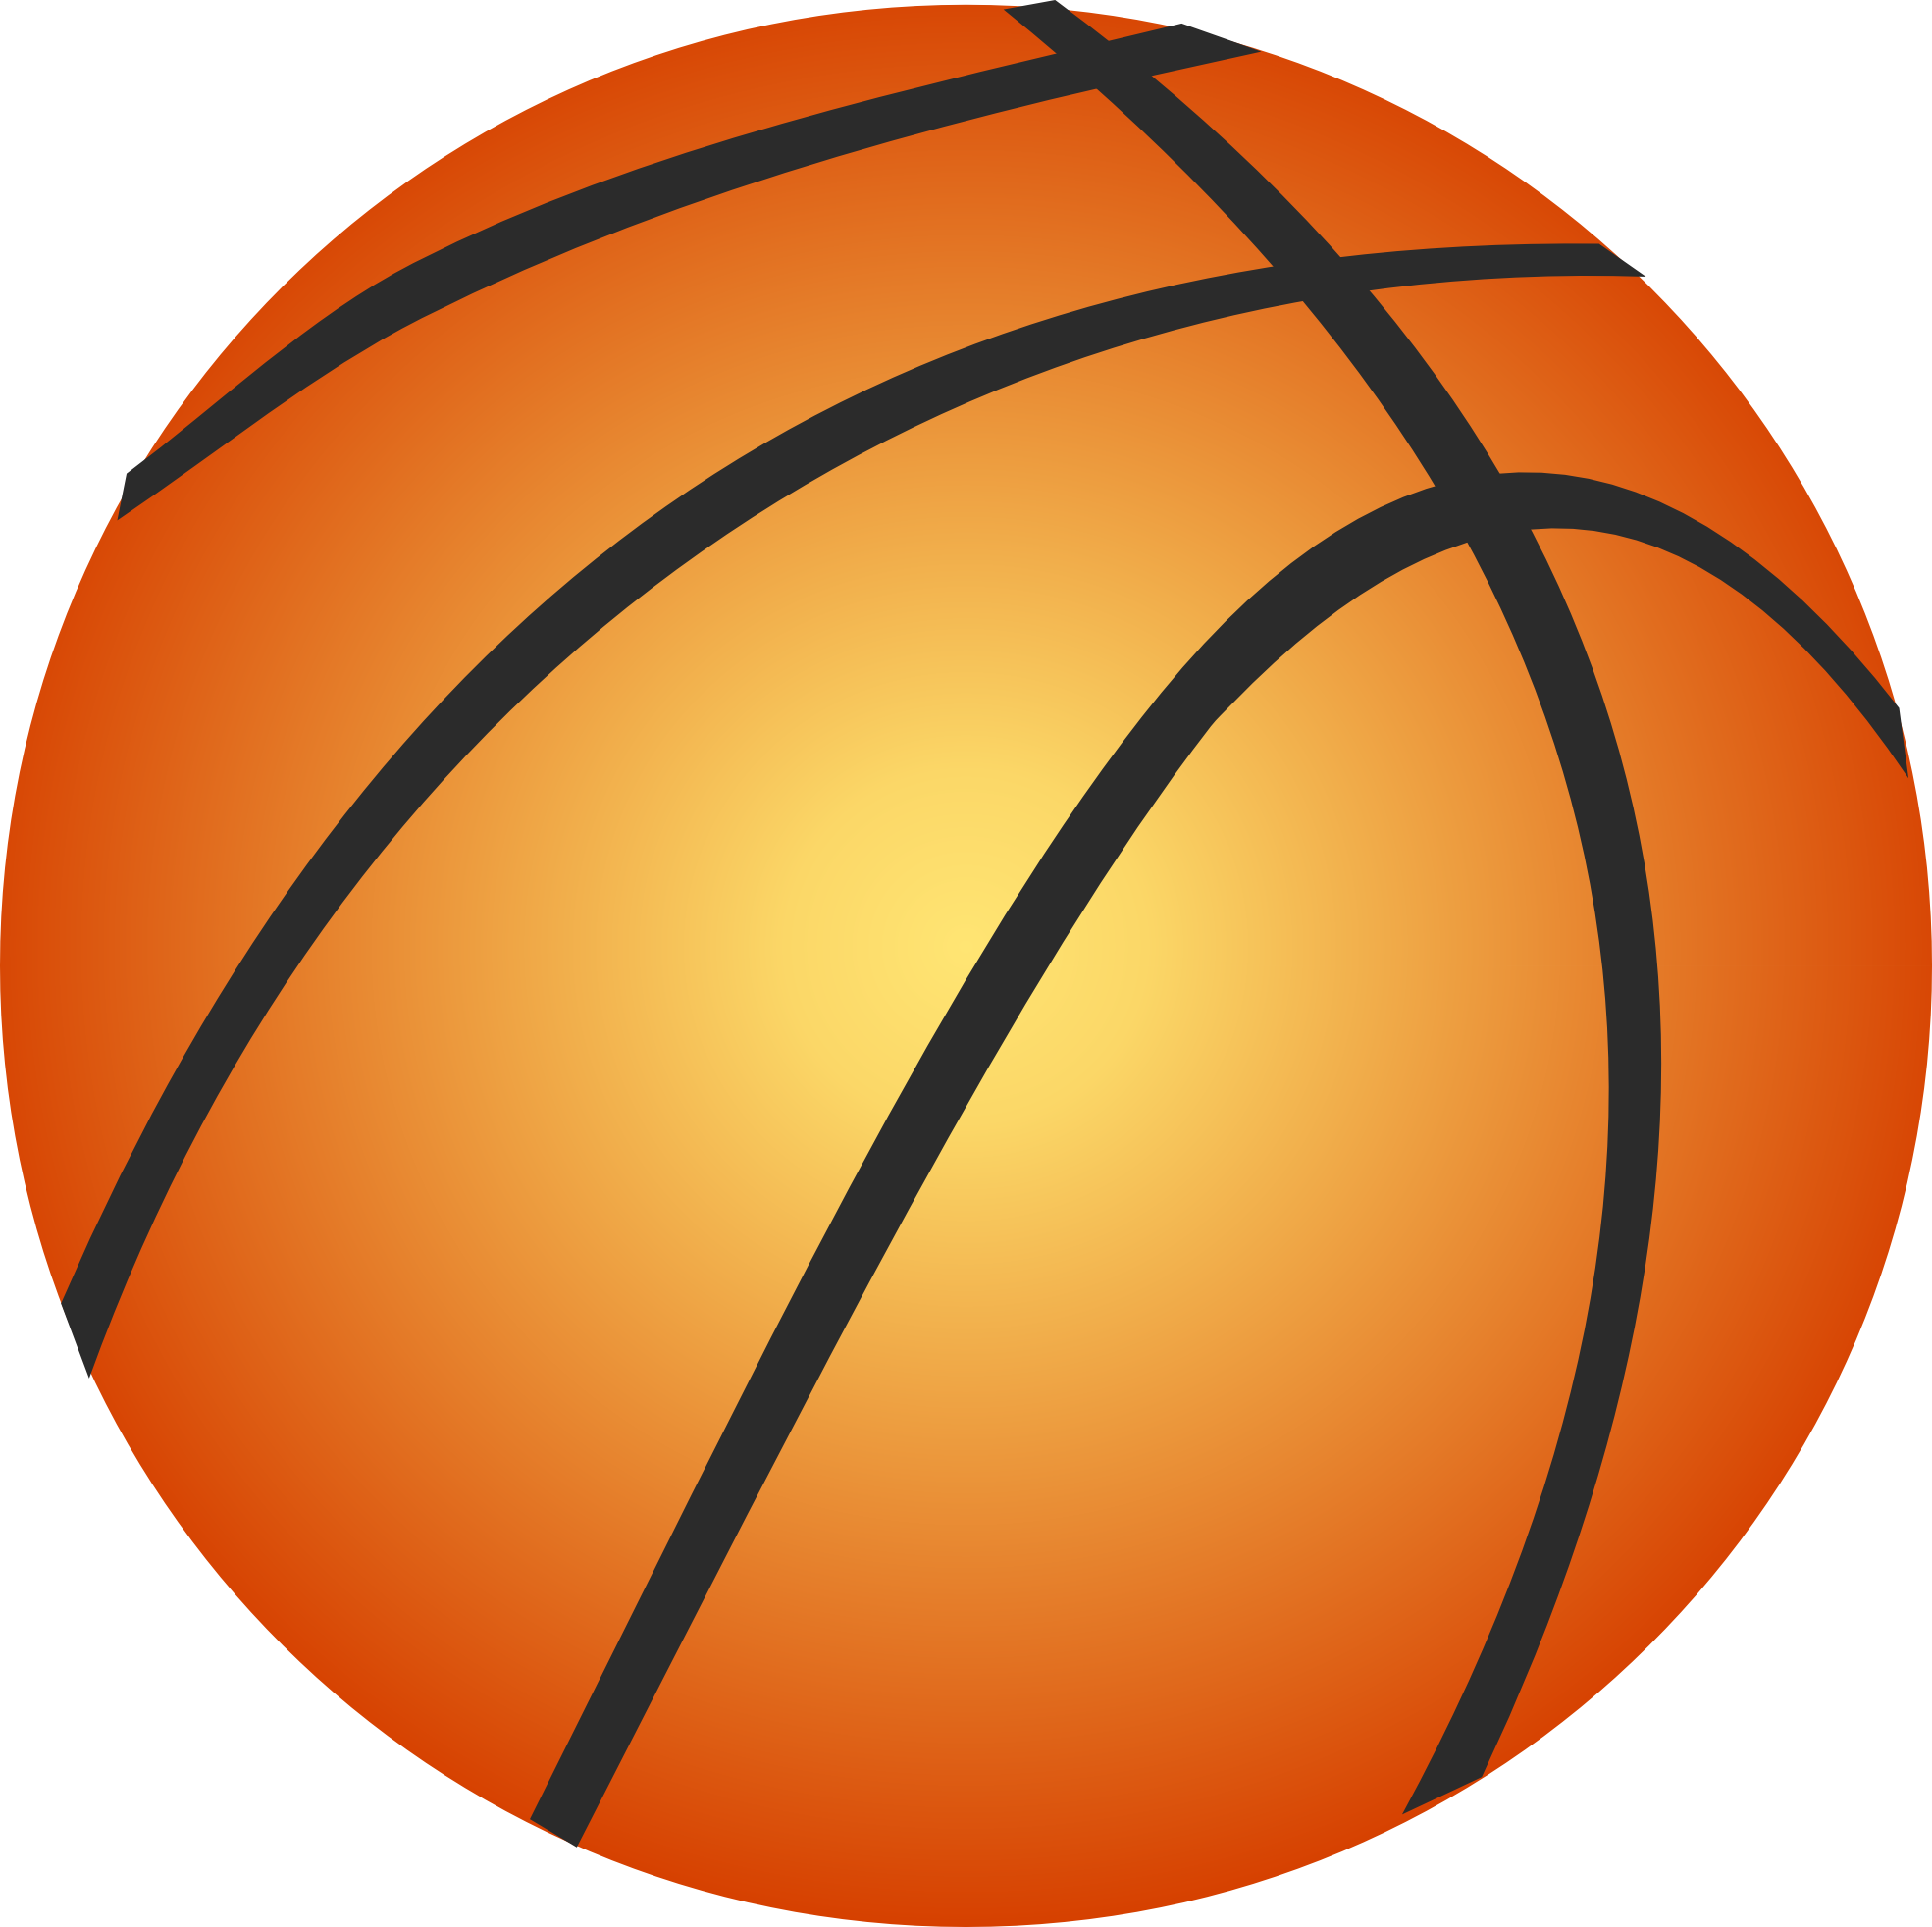 Indian basketball clipart graphic free library Basketball Clipart | Clipart Panda - Free Clipart Images graphic free library